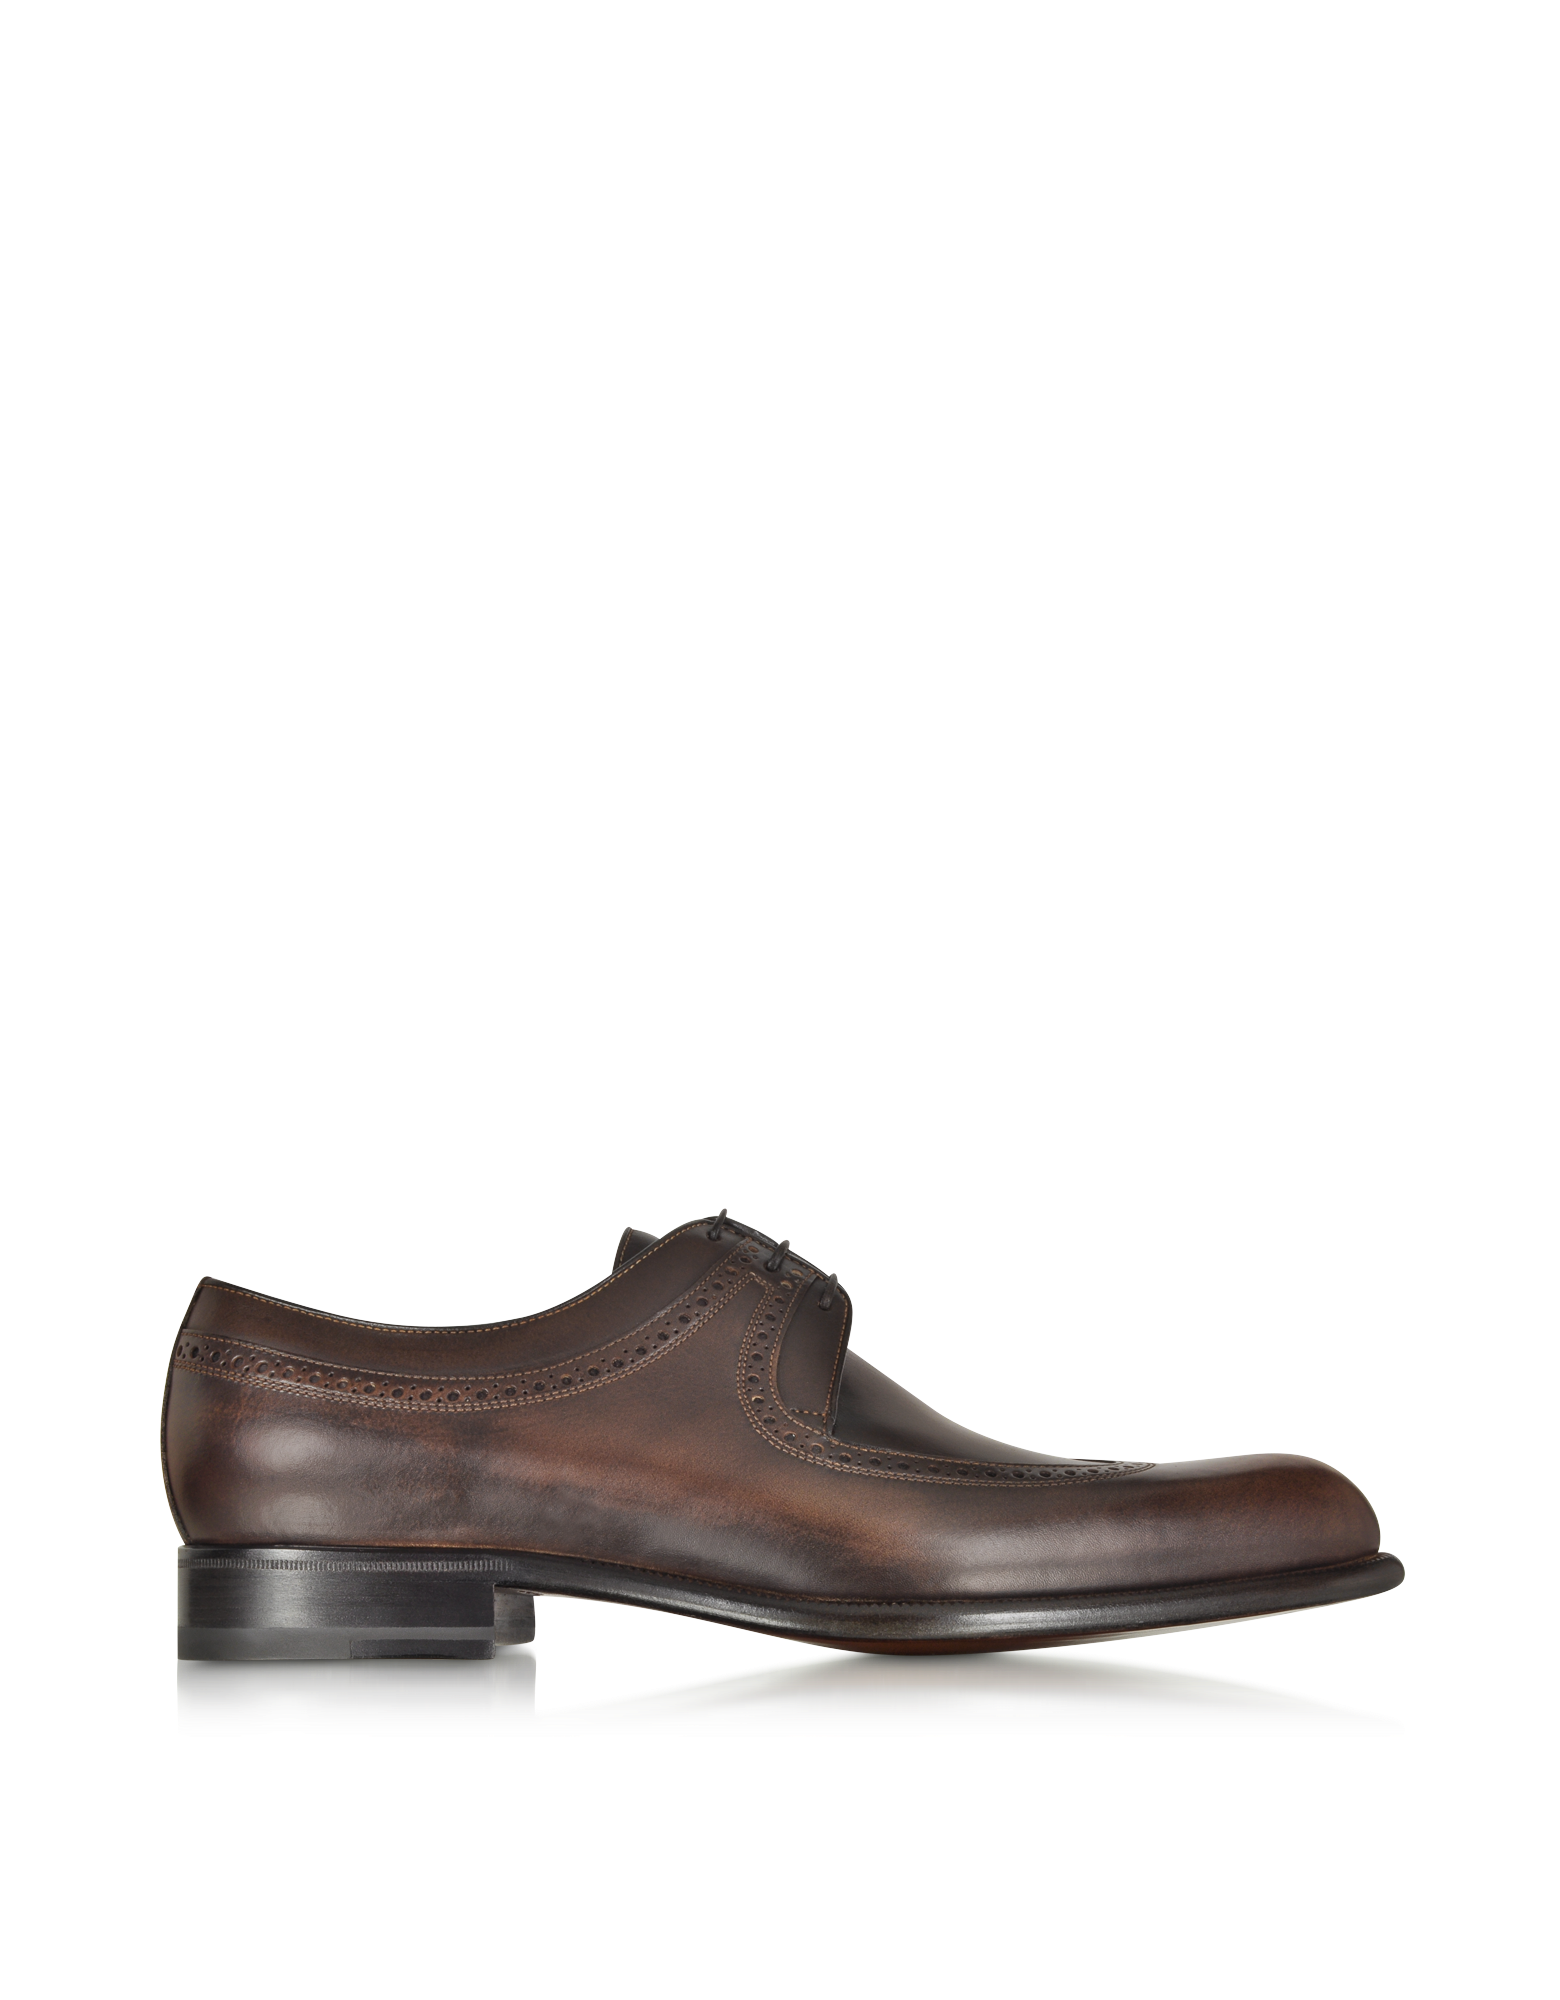 Image of Moro Washed Leather Derby Shoe